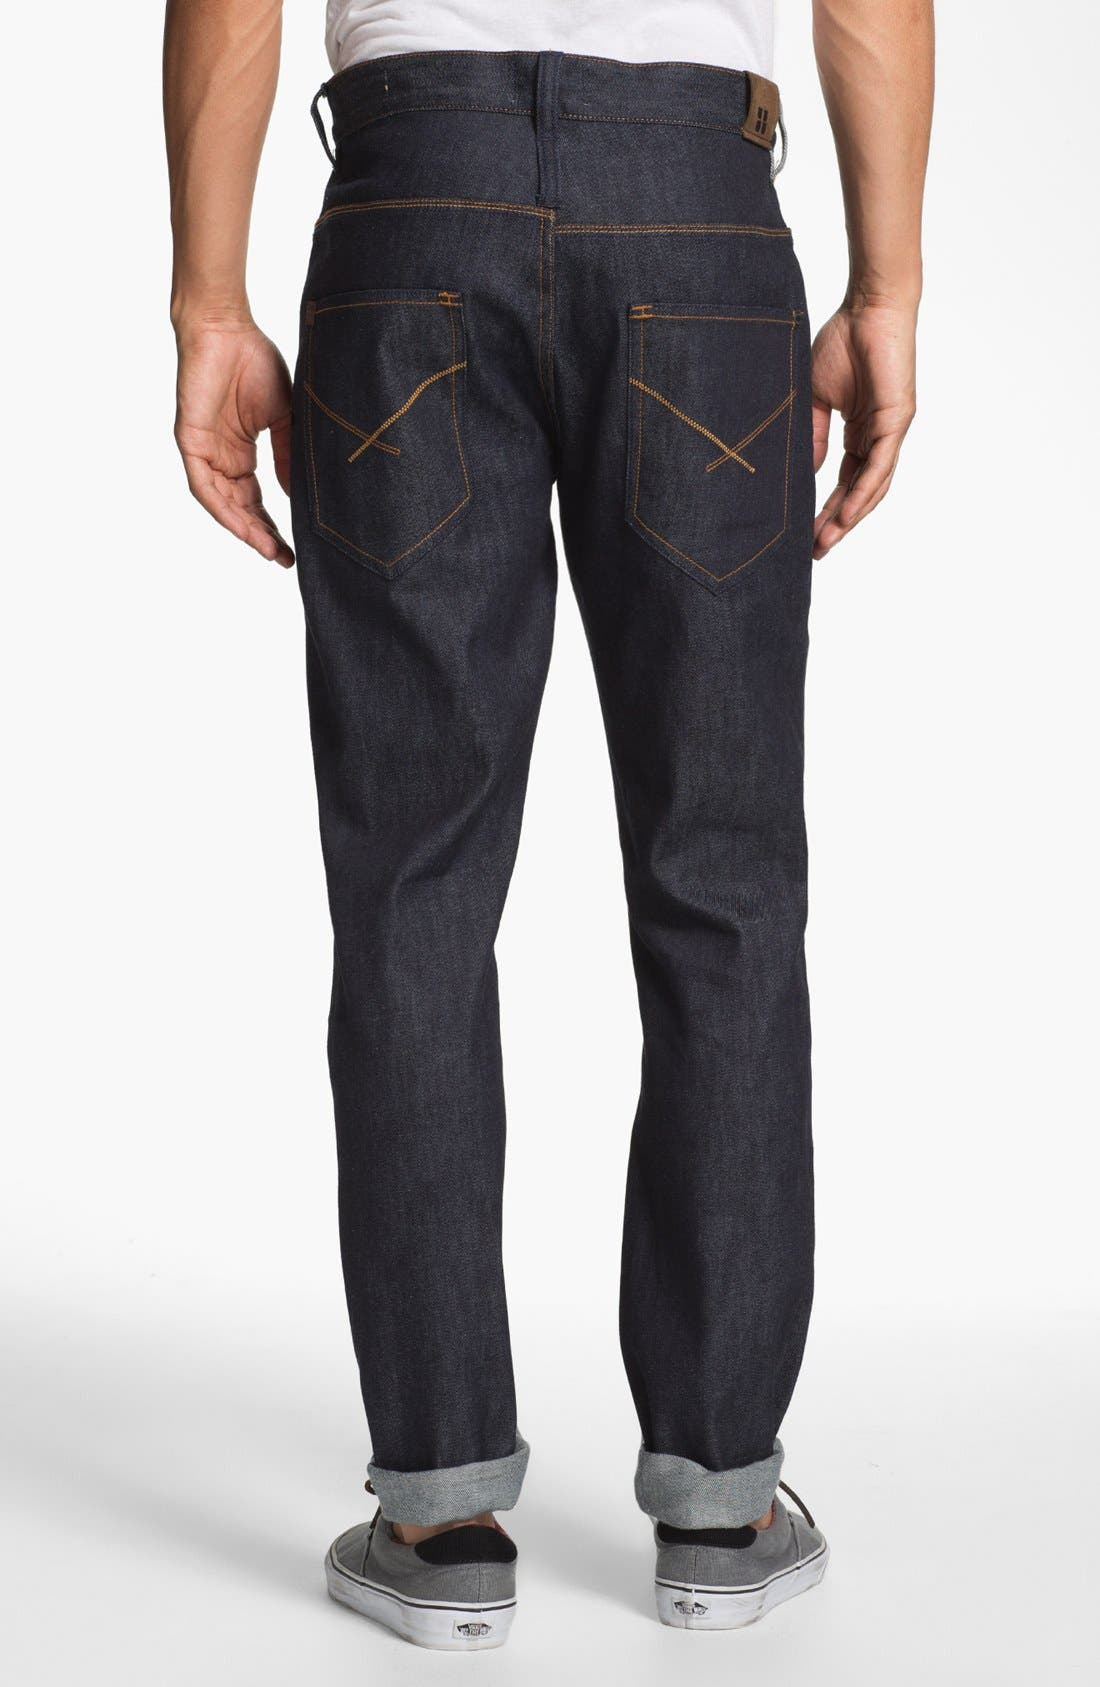 Alternate Image 1 Selected - Insight 'Loose Joints' Slim Leg Jeans (Indigo Raw)